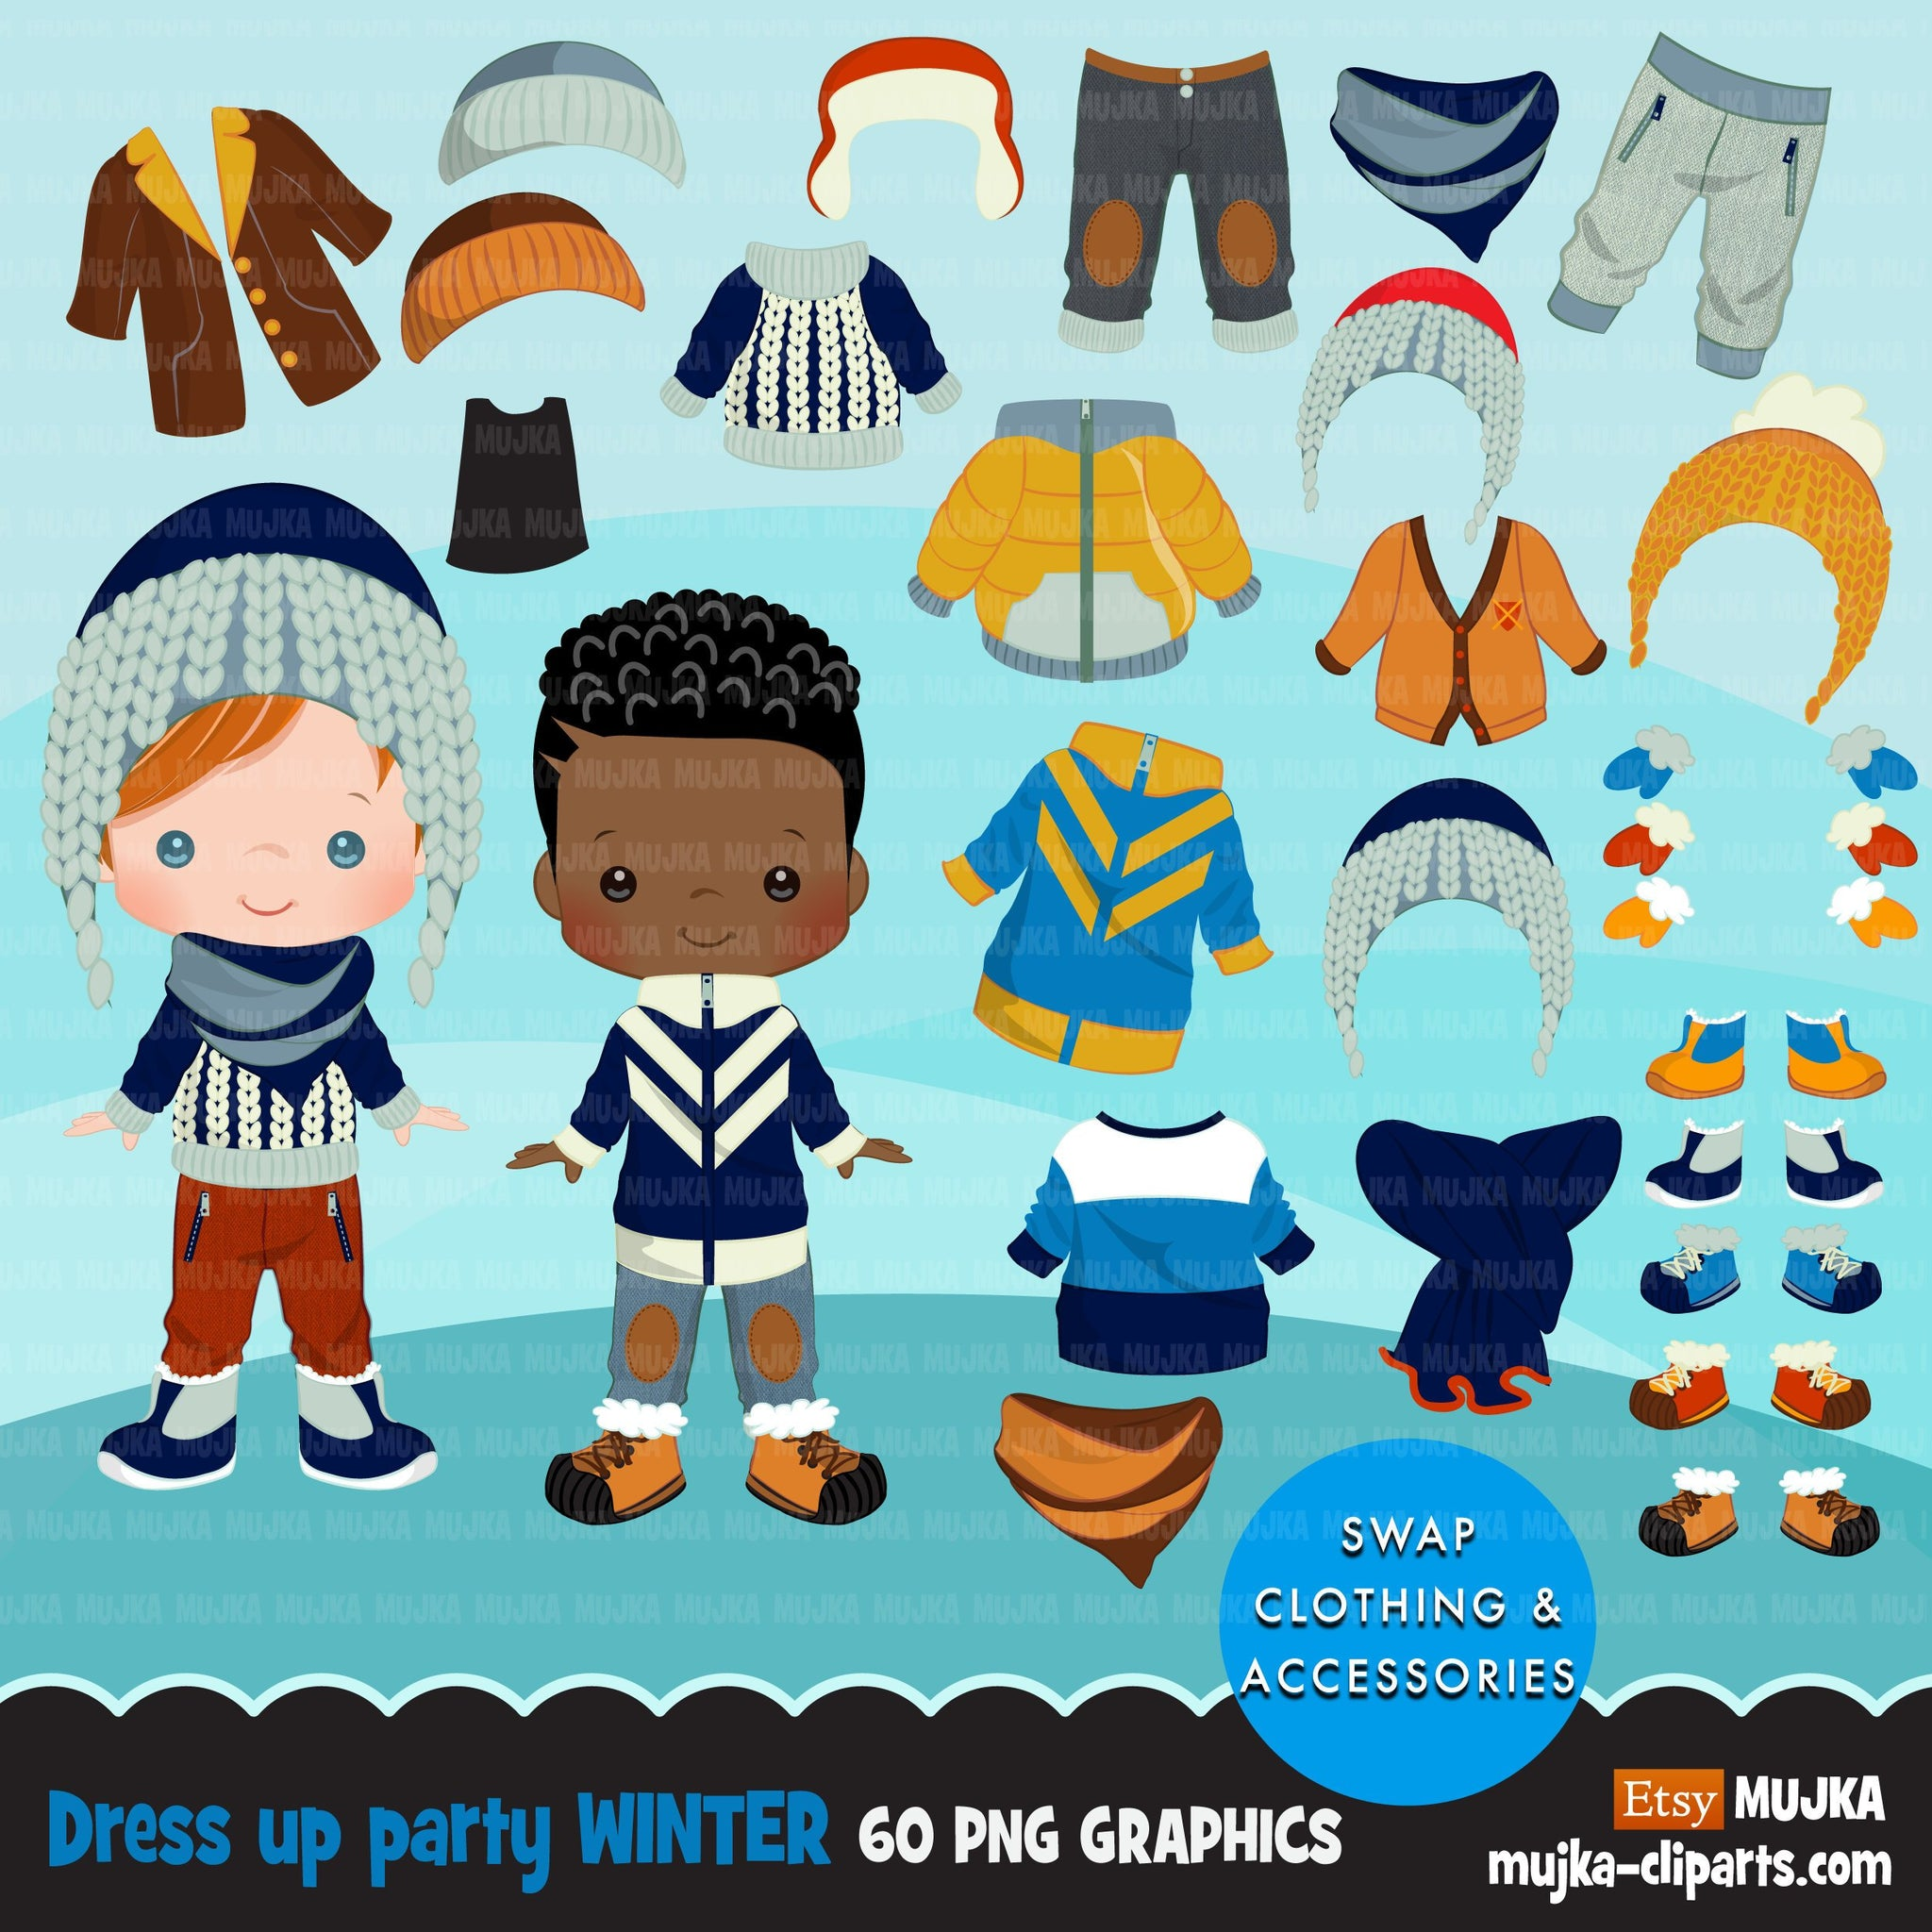 Paper doll clipart, Winter outfits, winter Dress up Party, boy fashion, black boy, png clip art, commercial use sublimation graphics